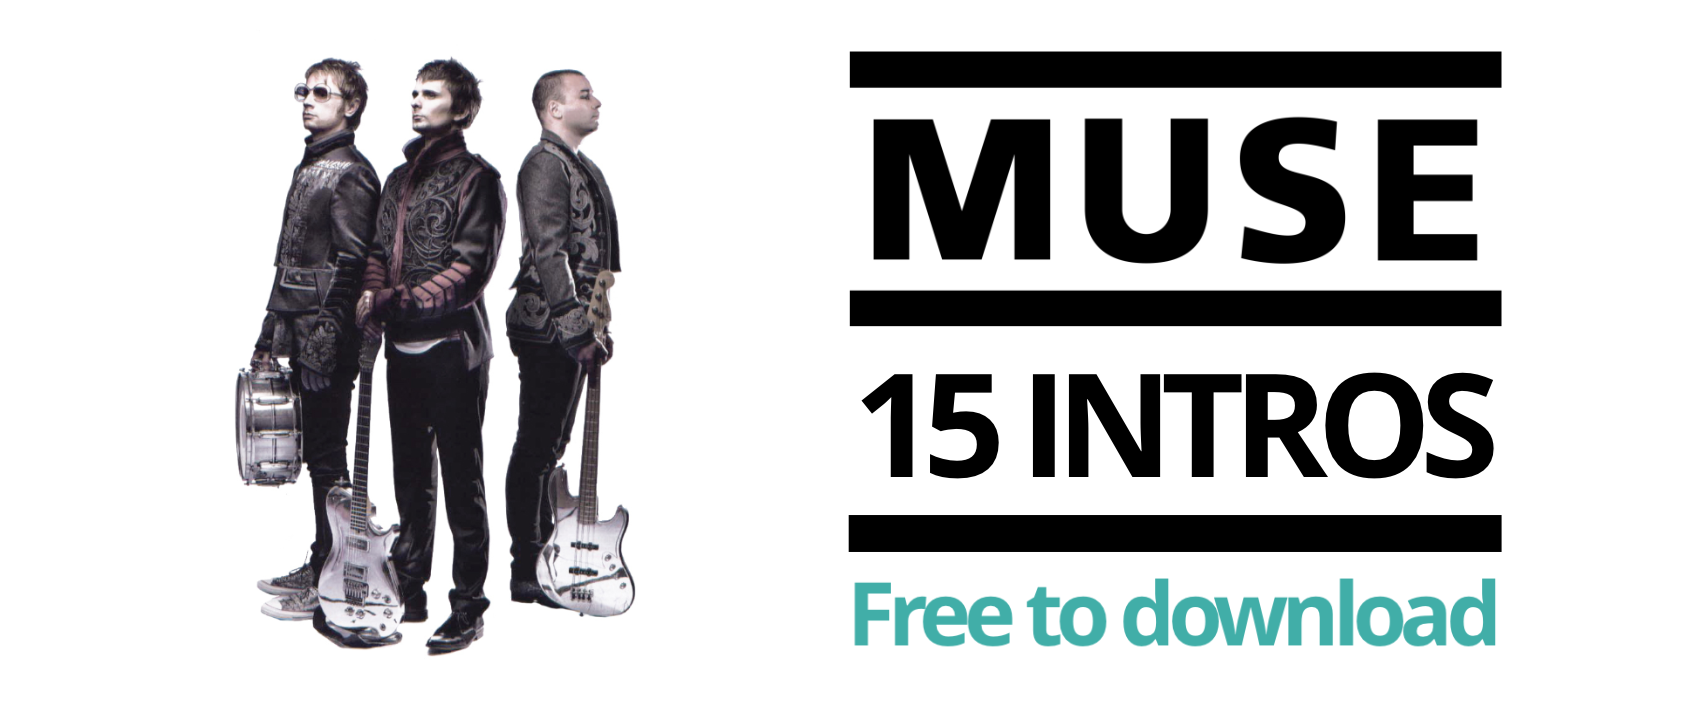 [FREE TABS] Play top 15 Muse intros